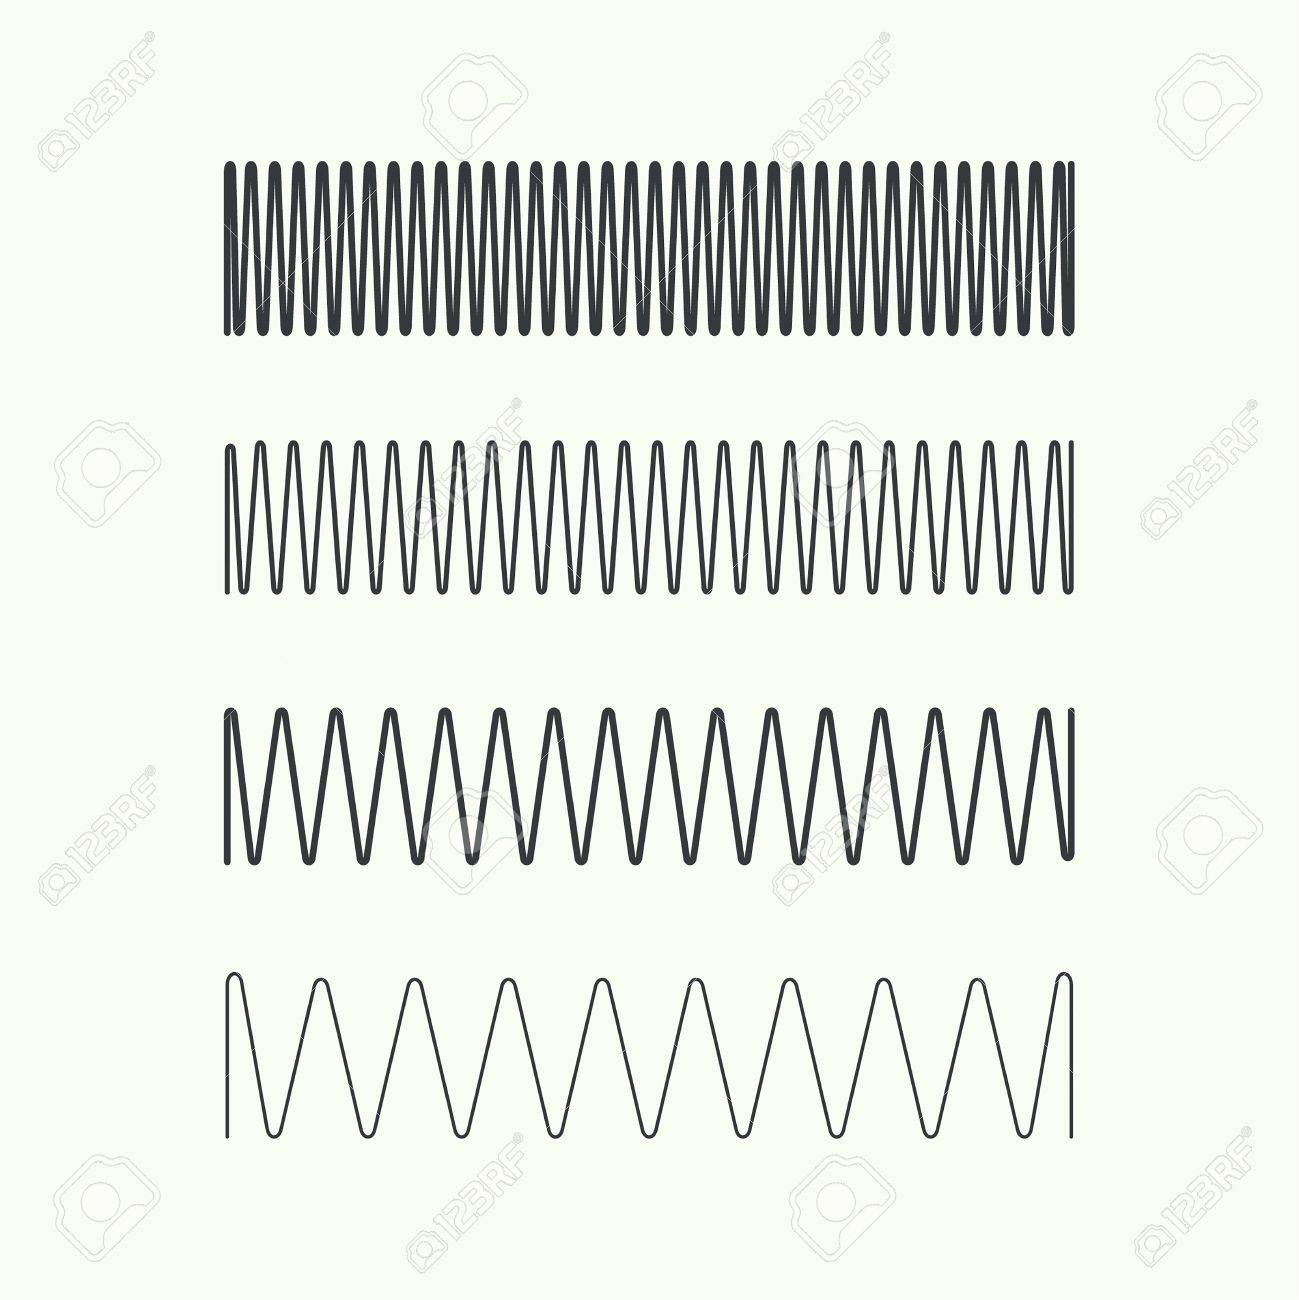 Set Coil Spring Vector Icon. Induction Spiral Electrical Symbol ...